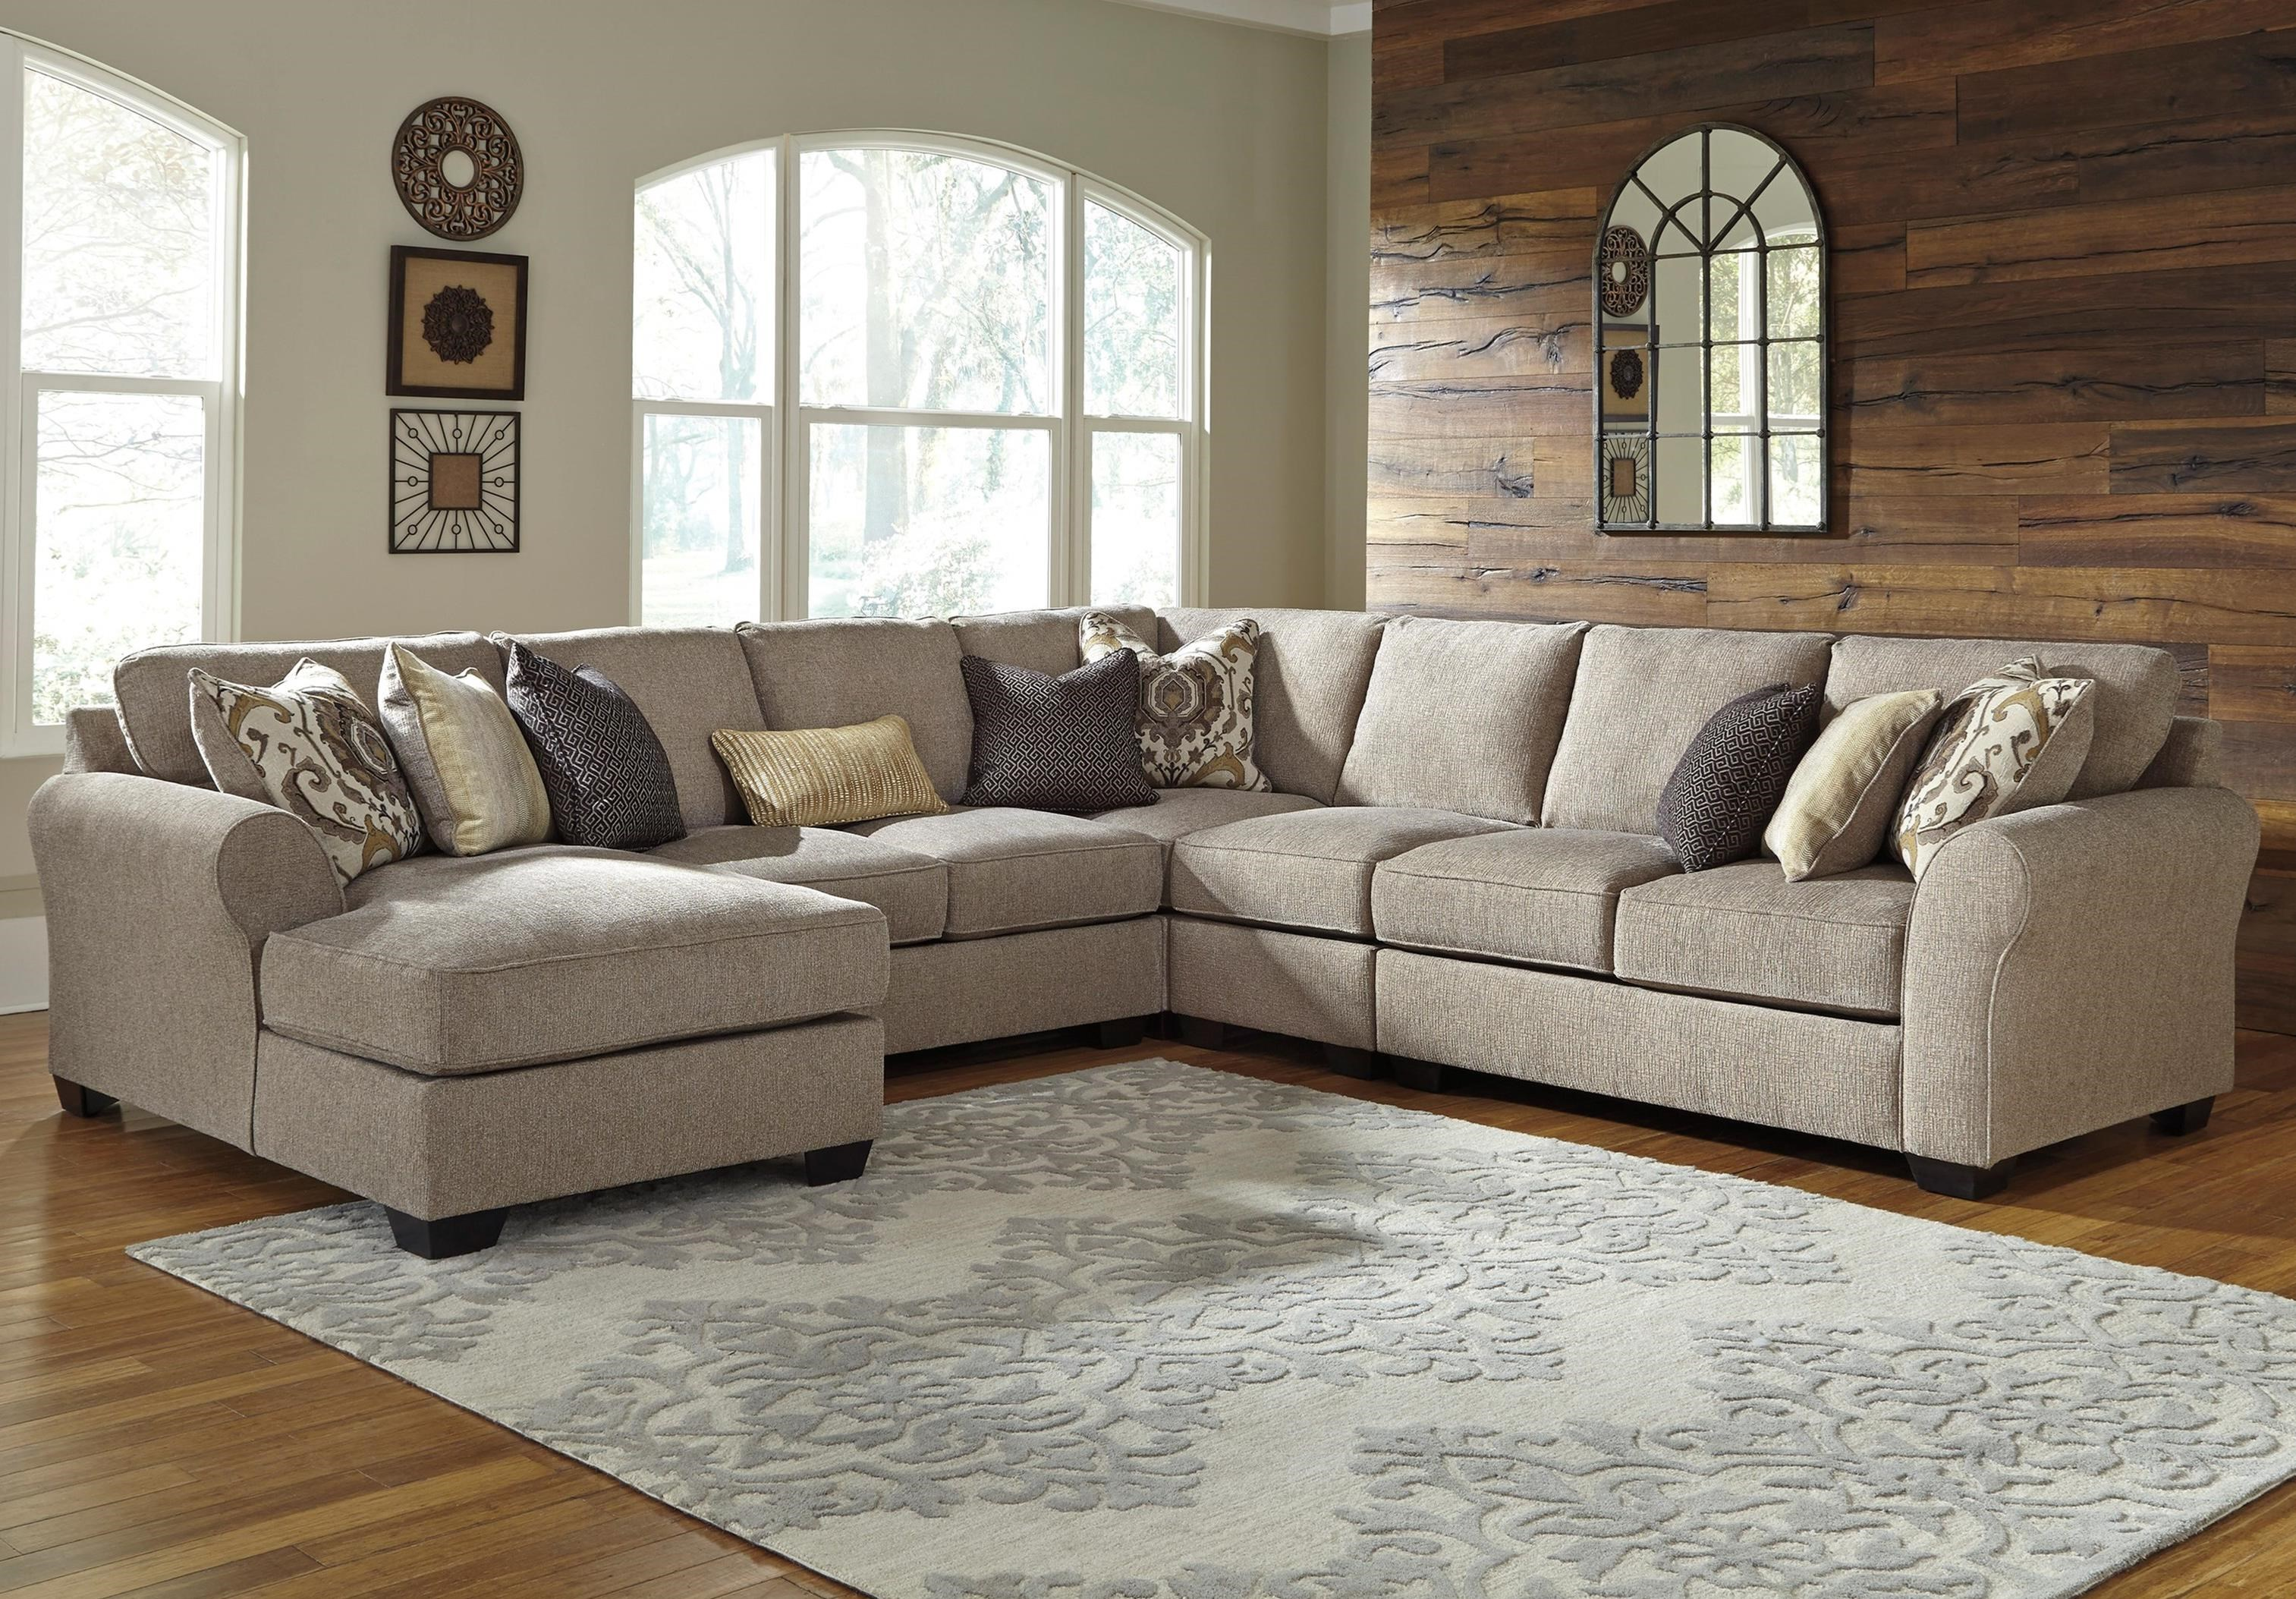 Pantomine 5-Piece Sectional with Chaise by Benchcraft at Value City Furniture